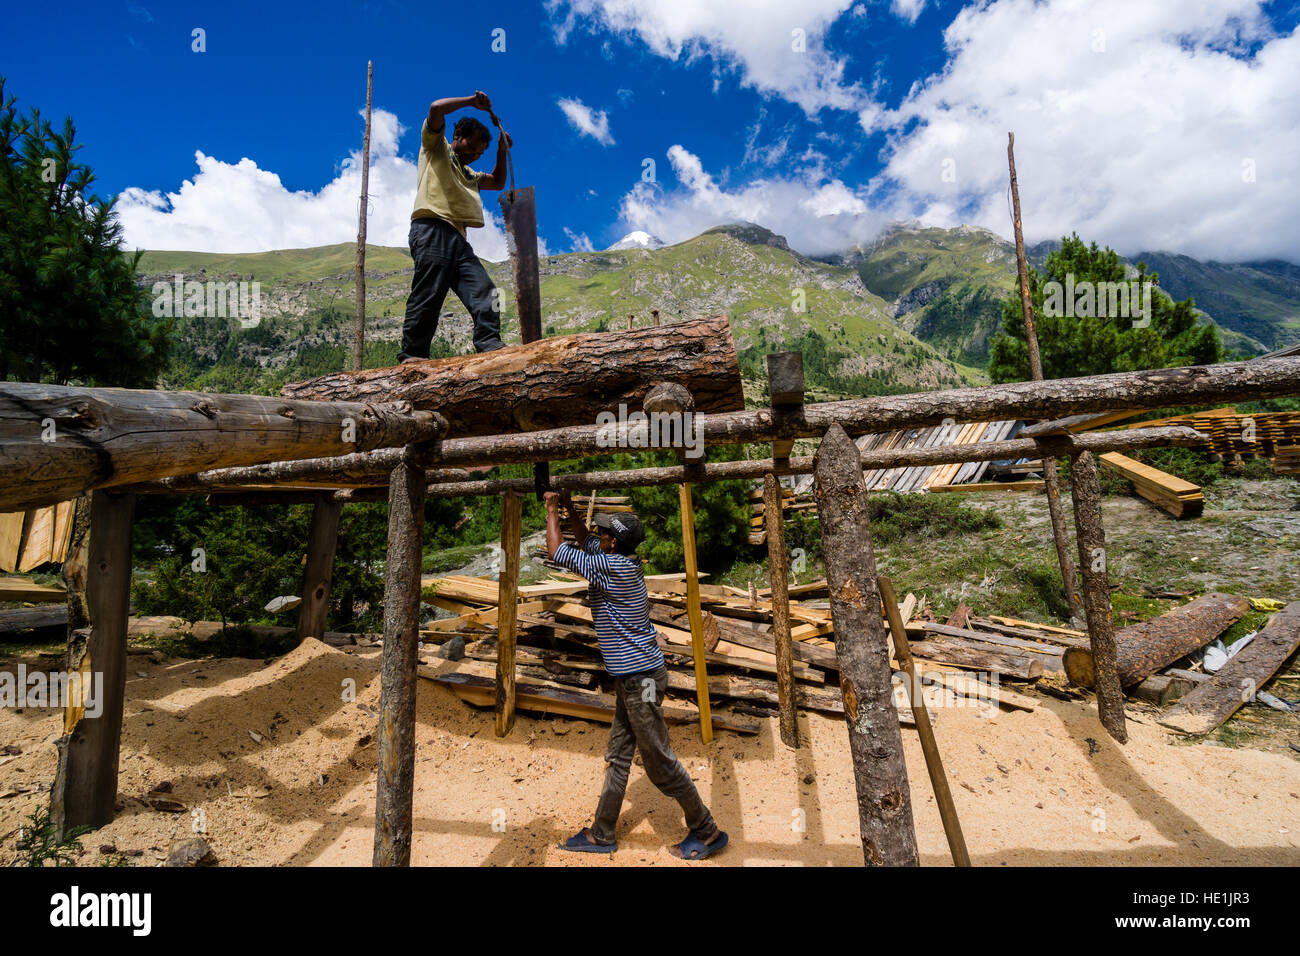 Two local men are sawing timber wood, using a blade saw and a wooden scaffold - Stock Image